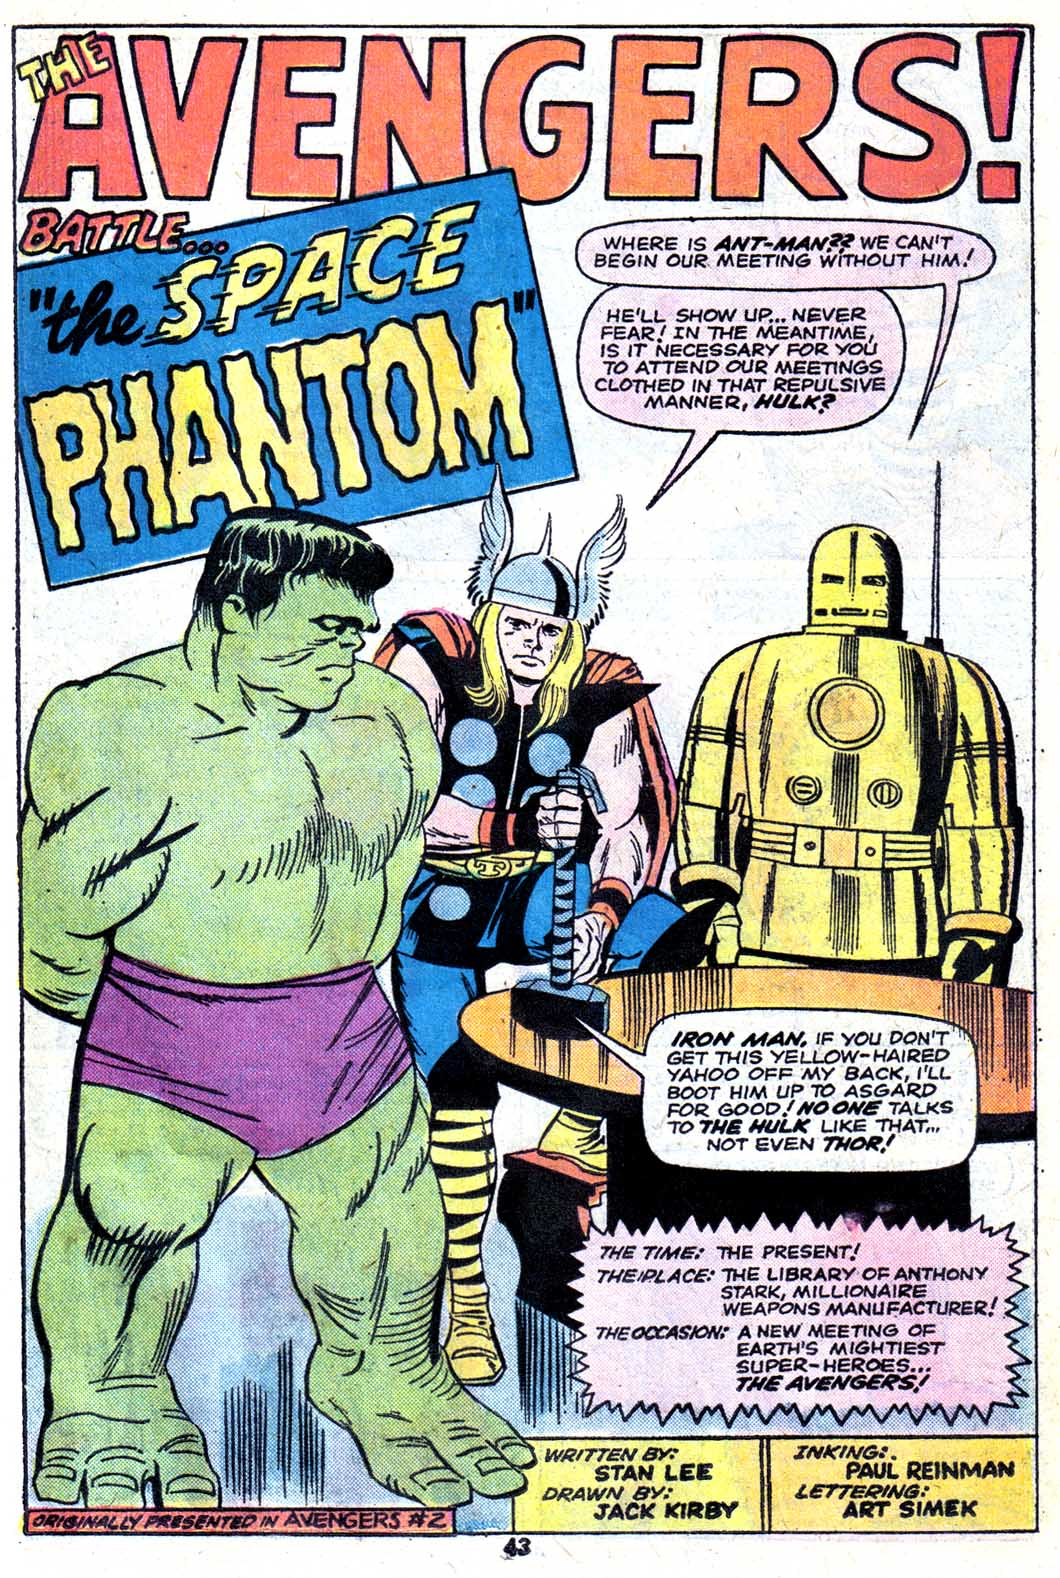 Giant-Size Avengers (1974) issue 3 - Page 45